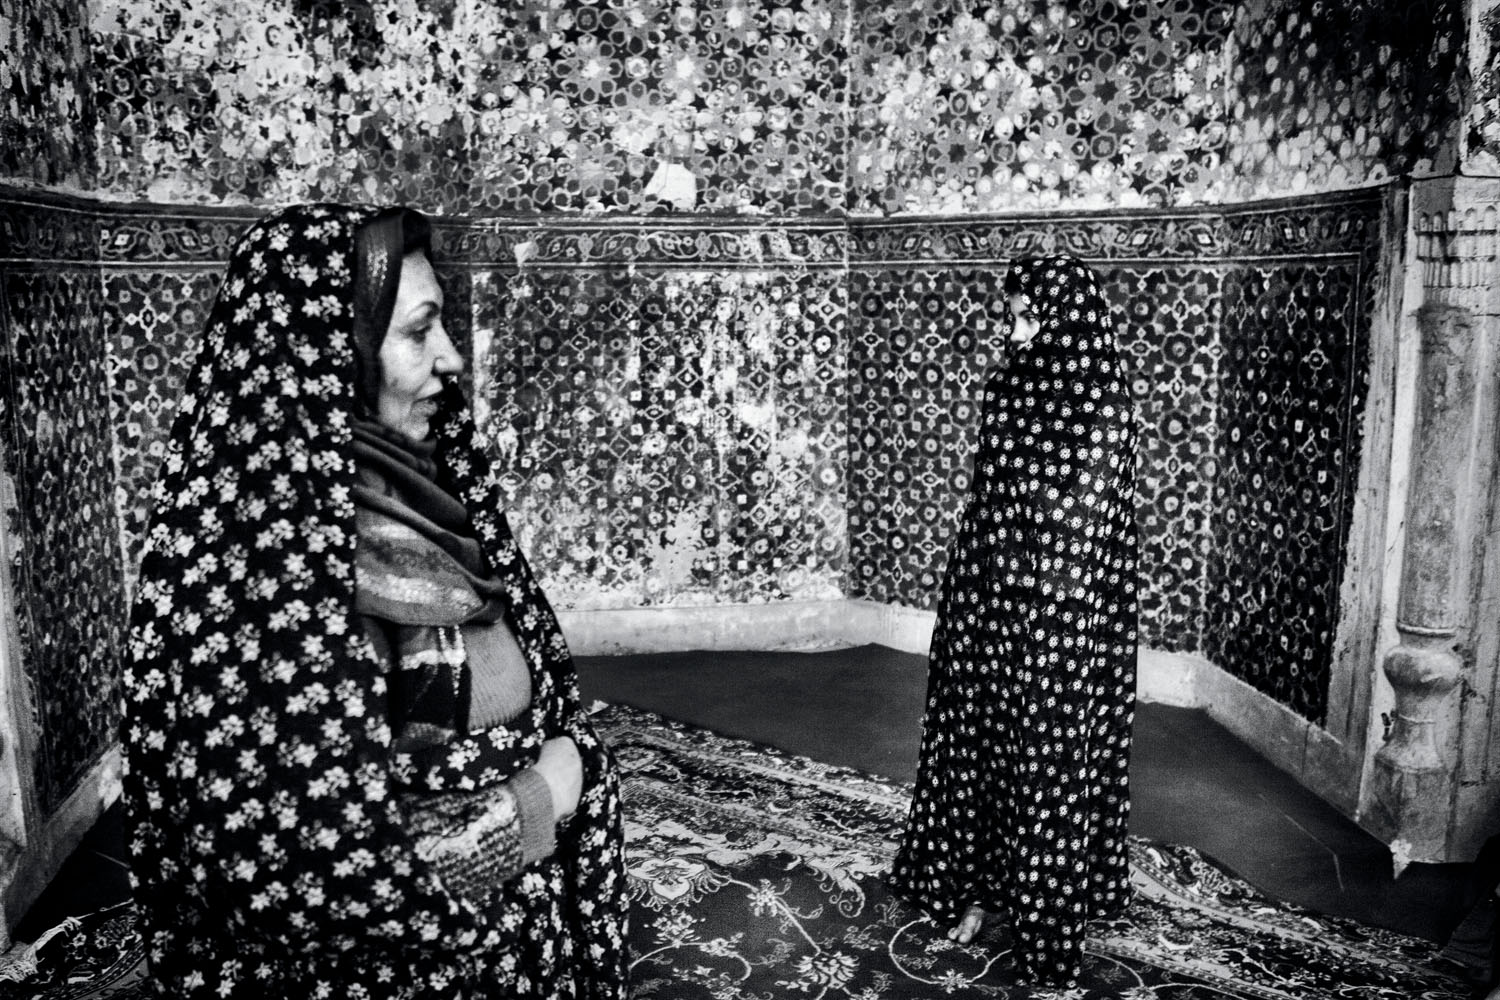 An Afghan woman (left) and her daughter, refugees in Iran, visit a Sufi saint on a trip to their homeland. Afghanistan. 2010. Photo by Monika Bulaj.